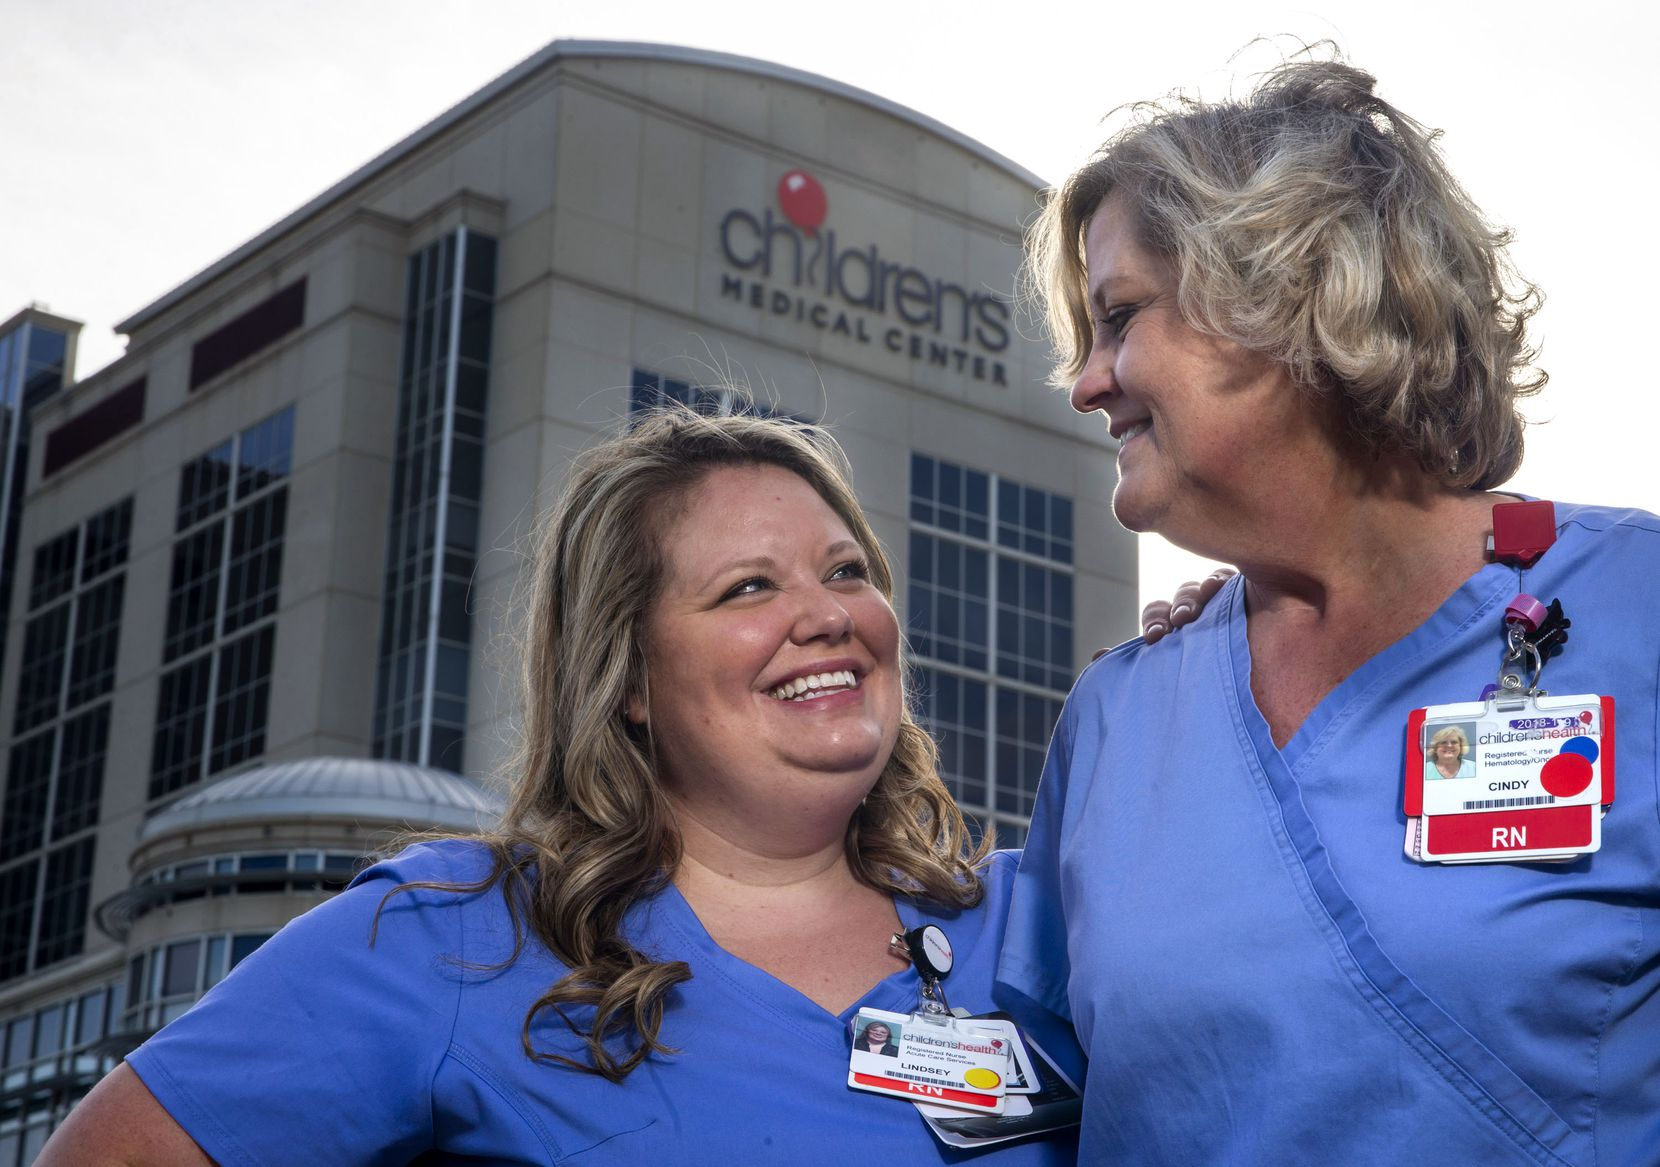 Lindsey Flores (left) and her mother, Cindy Flom, are not only family but also colleagues at Children's Medical Center Dallas. Flom's mother also was a nurse. Flores and Flom said they lean on each other for emotional support in their work.